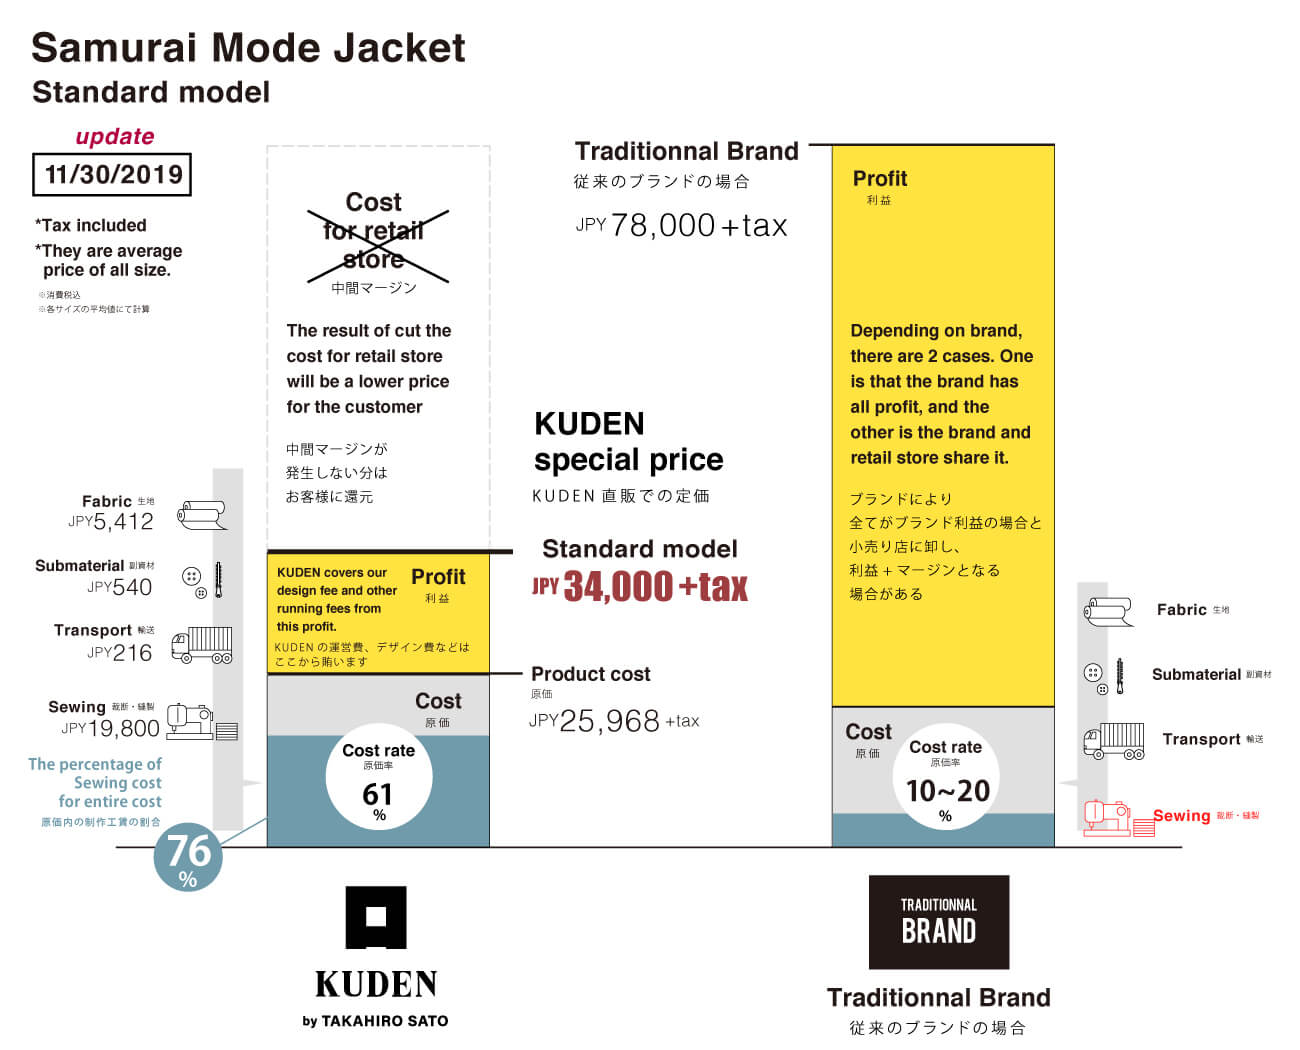 Price sheet of Next Kimono Samurai Mode Jacket from KUDEN by TAKAHIRO SATO